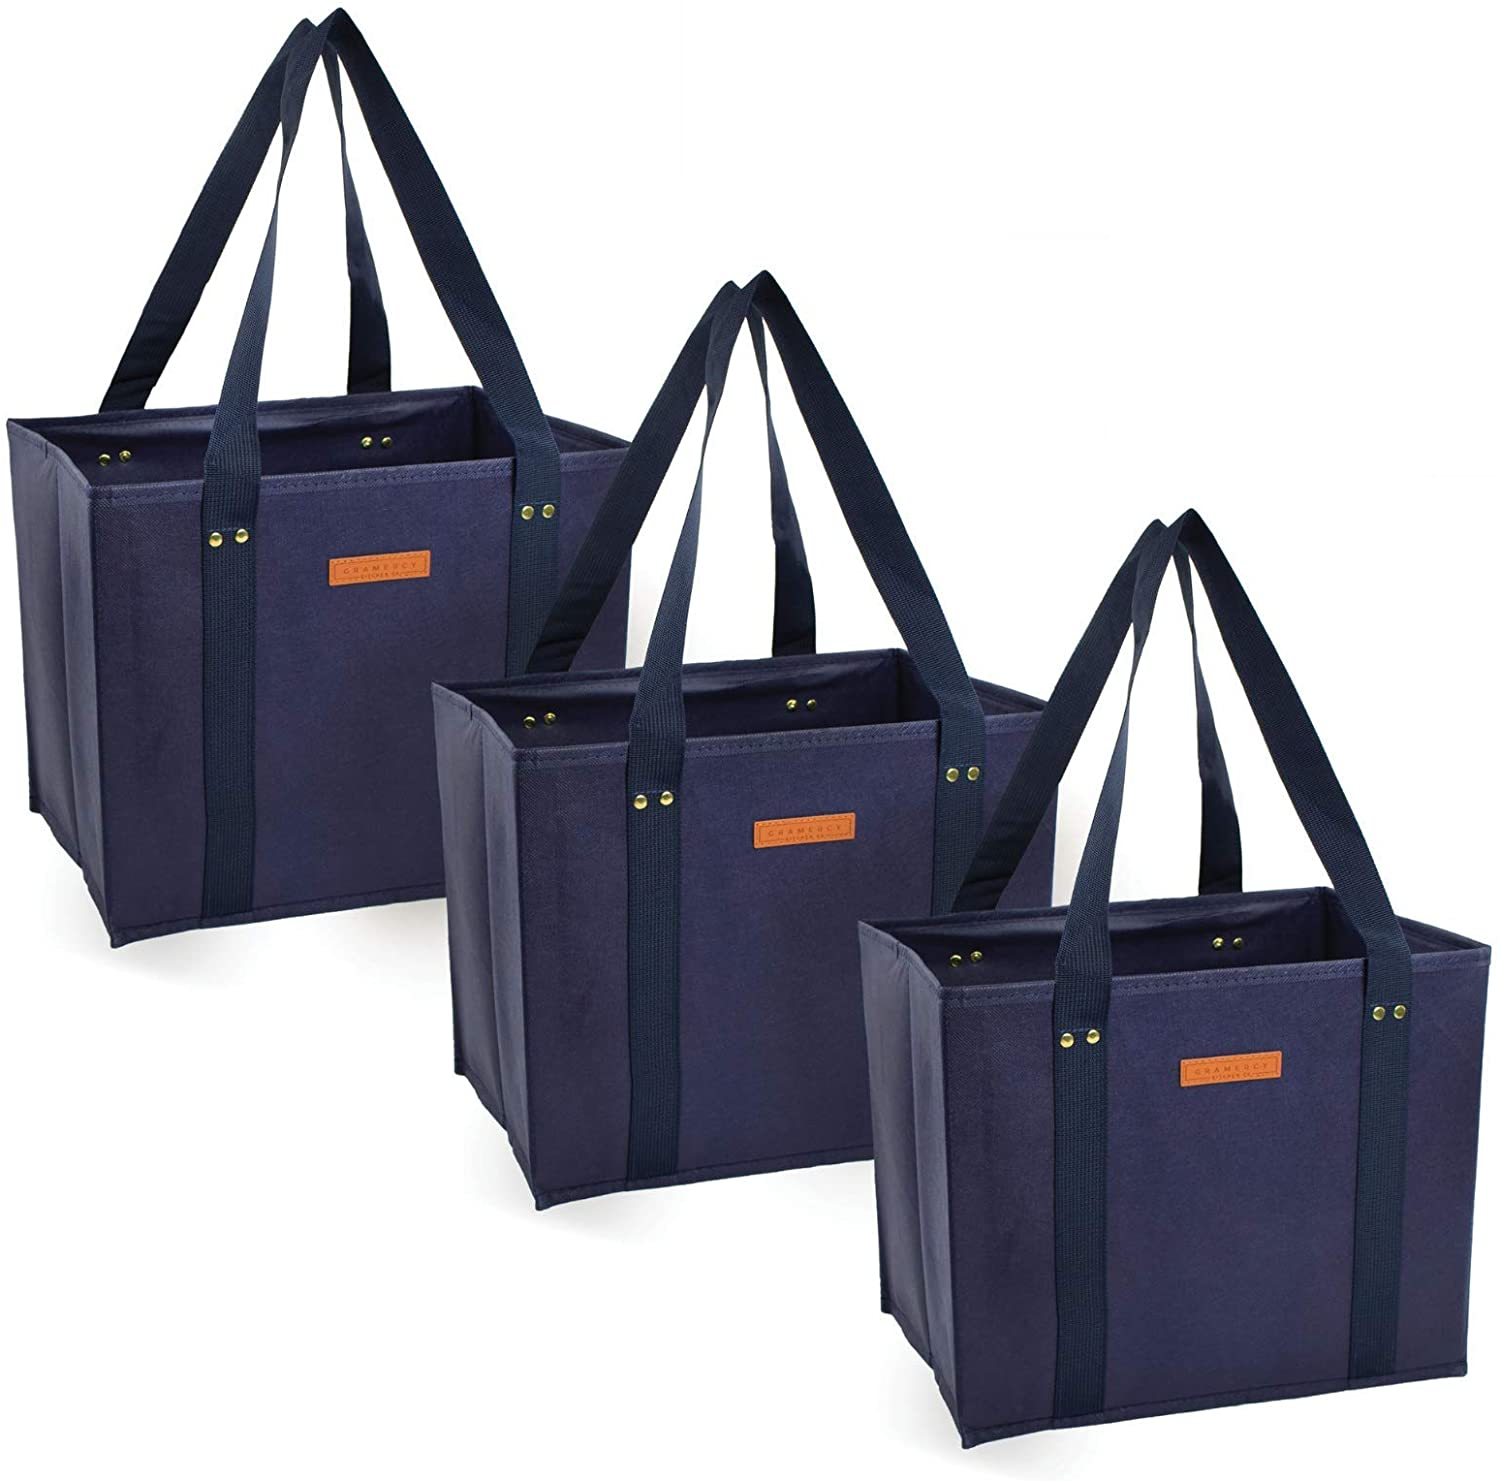 Sale Reusable WASHABLE Grocery Shopping Cart Trolley set 55% OFF 3 Bags of -